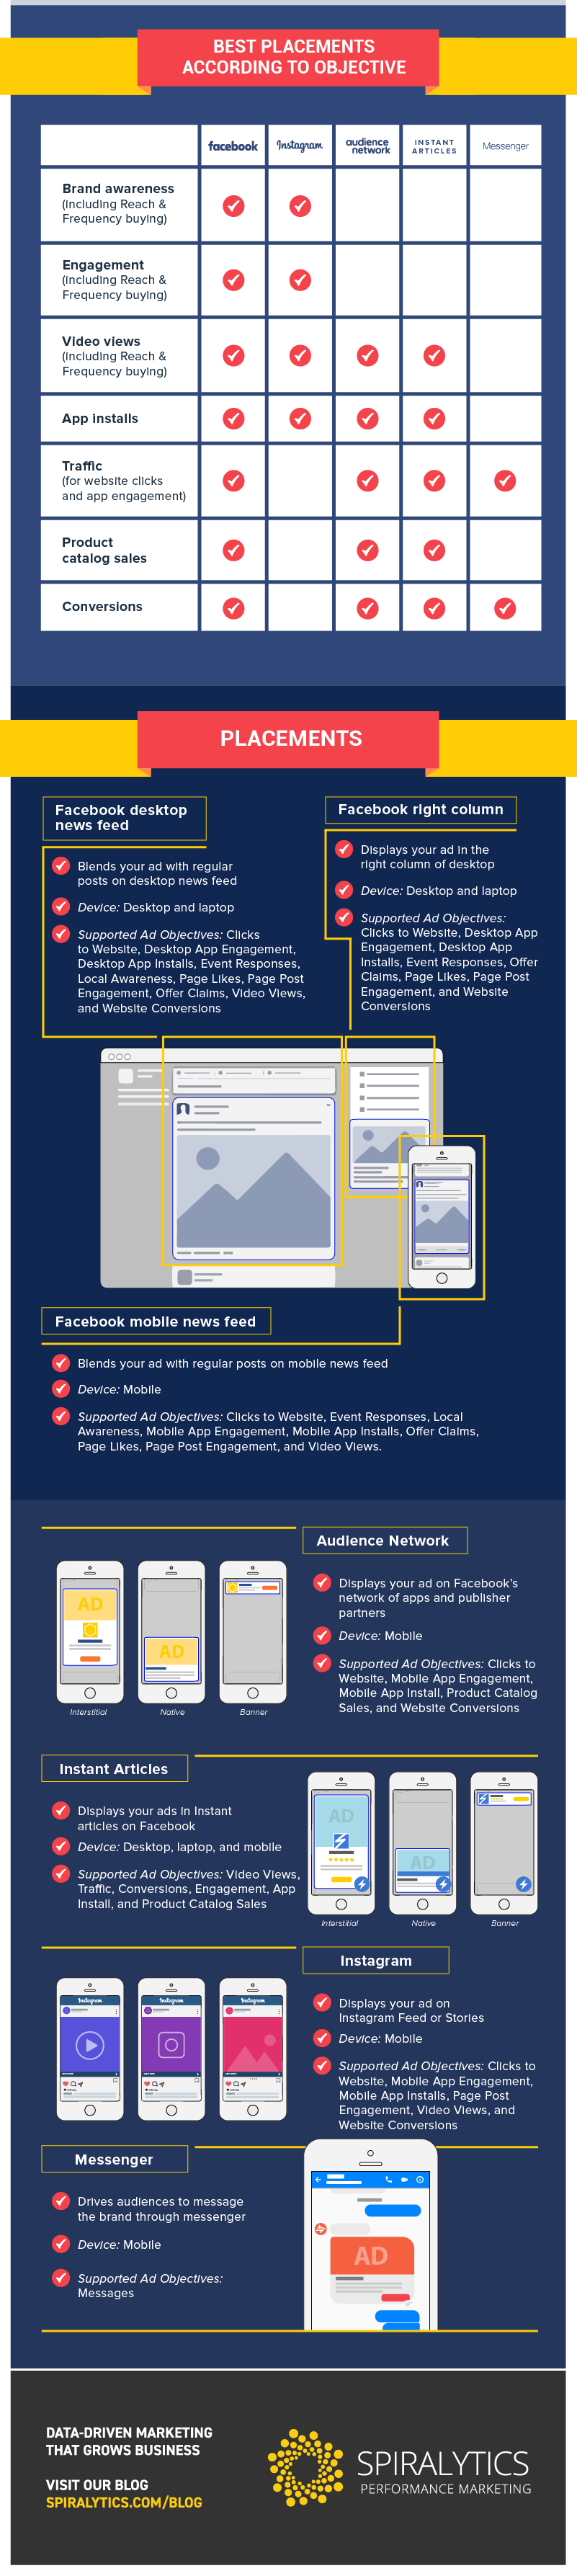 Ultimate guide to facebook advertising placements rev1 02